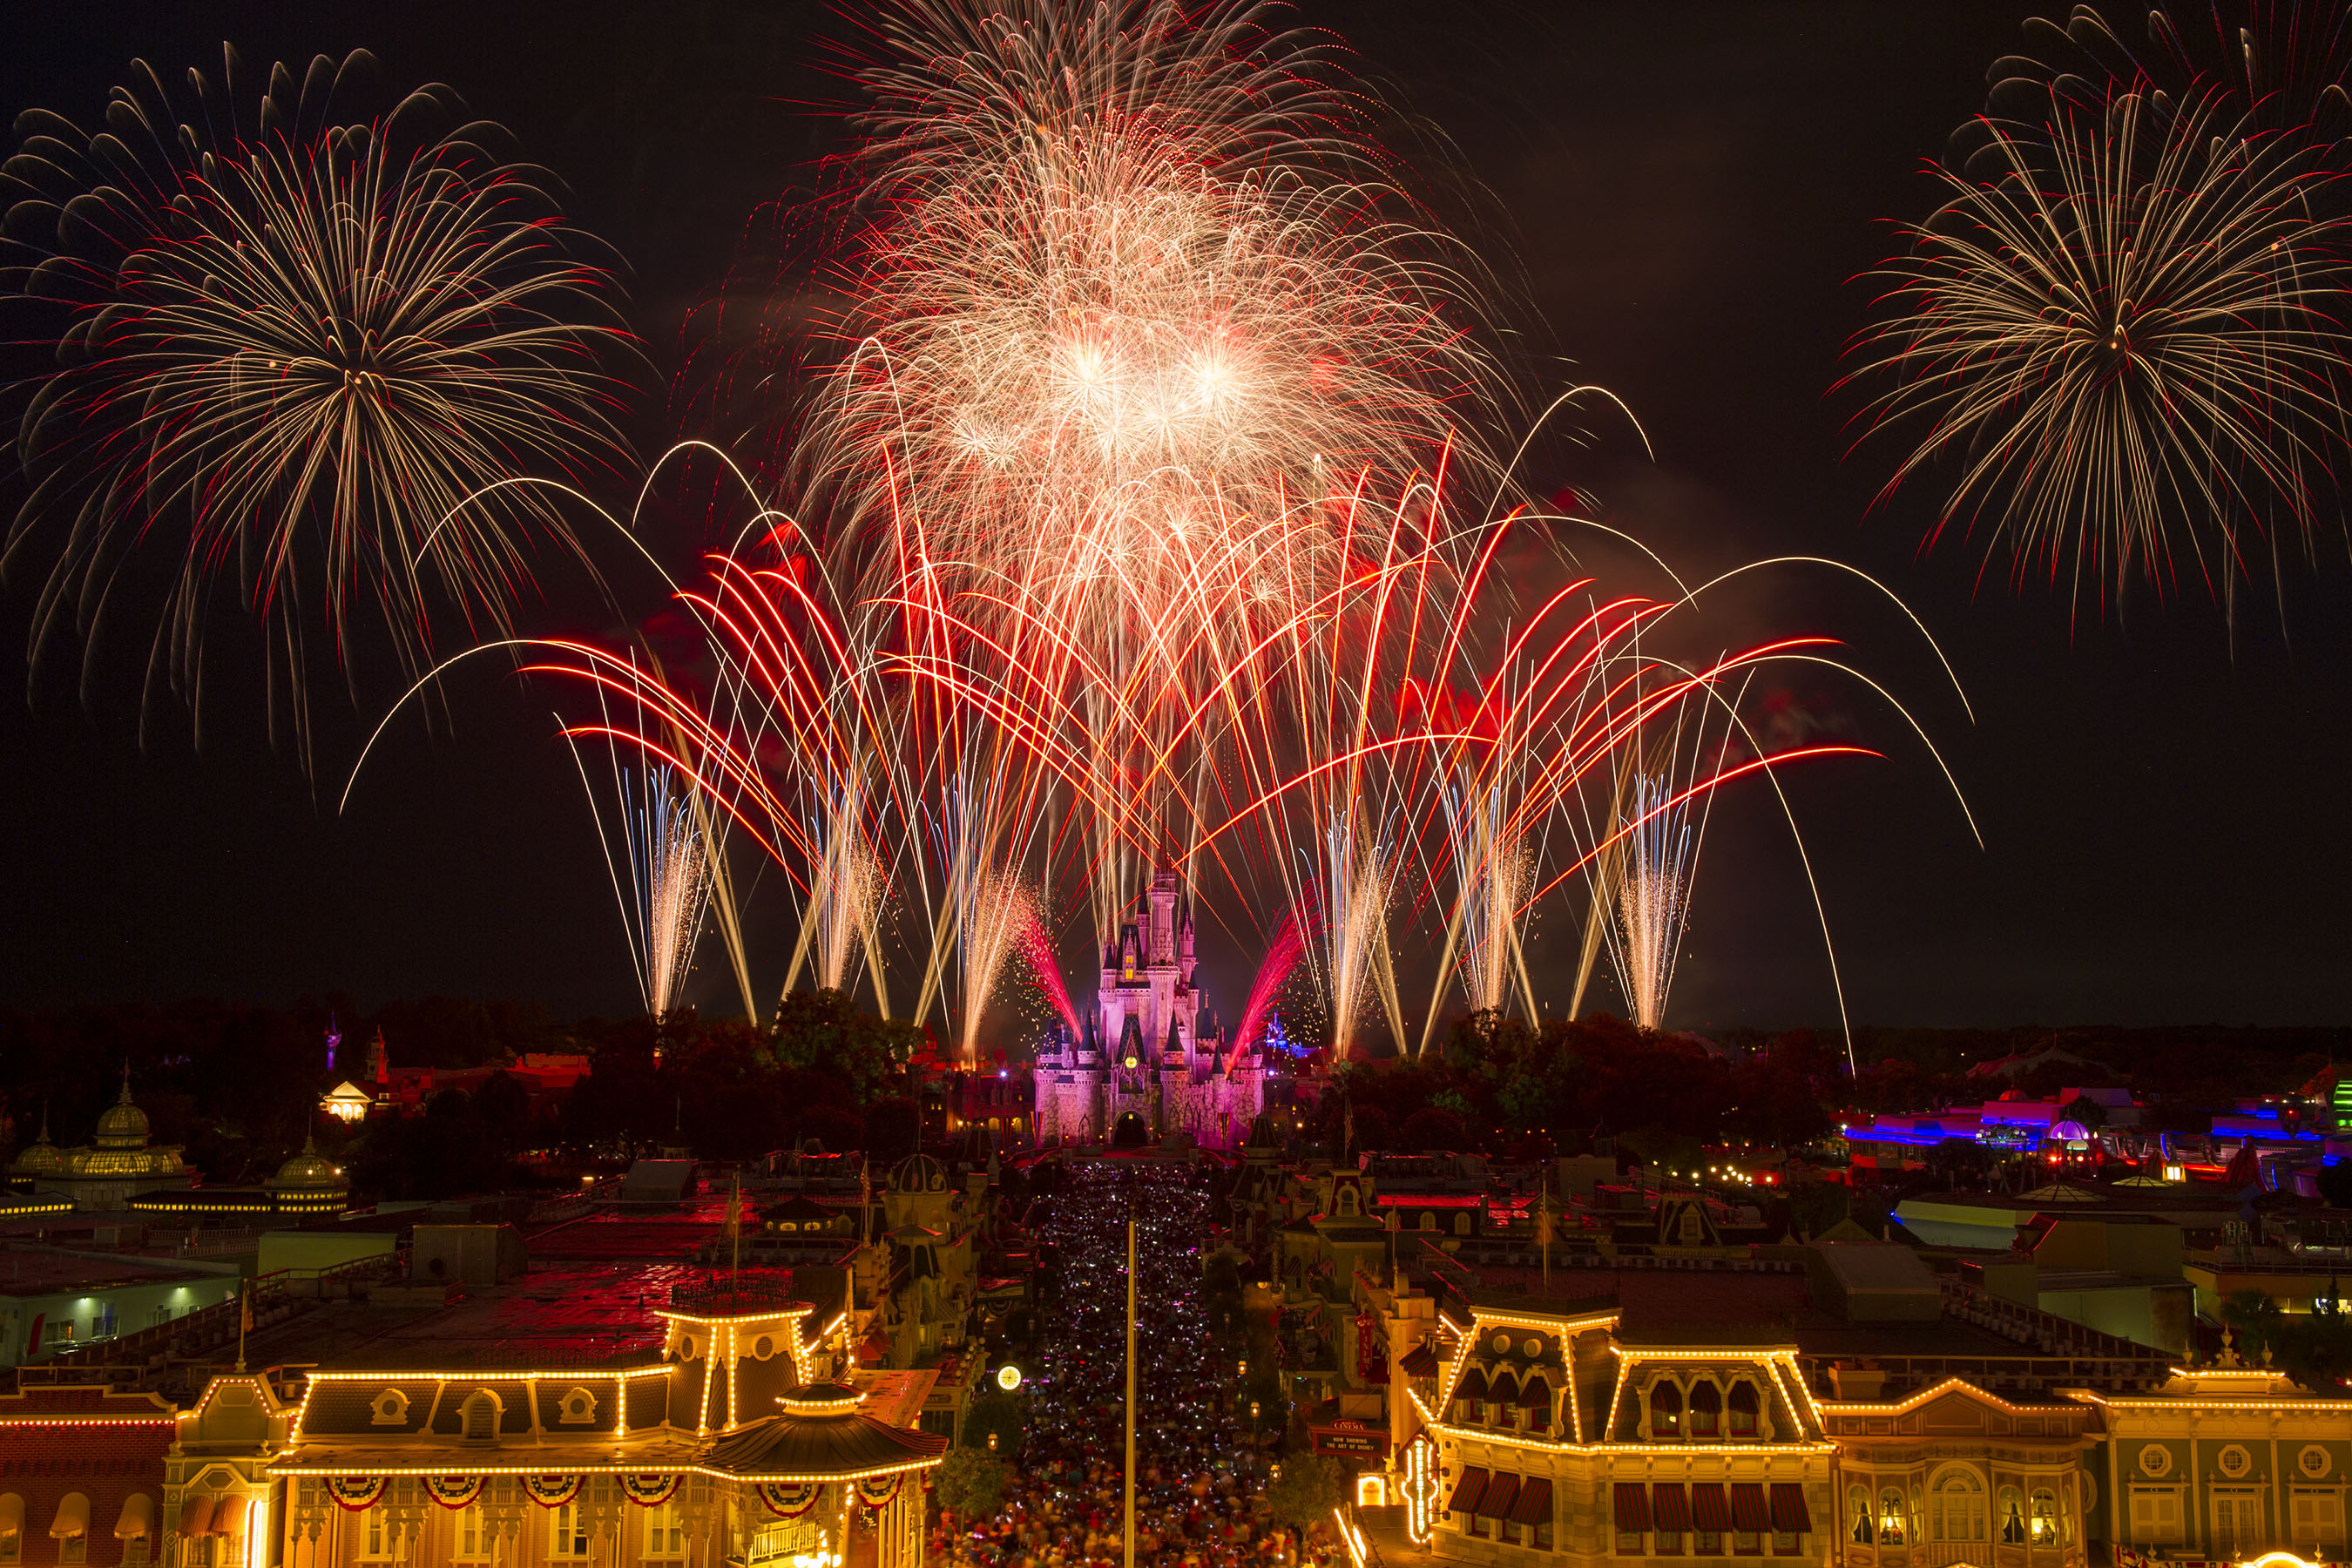 4th of July fireworks, 4th of July, family travel